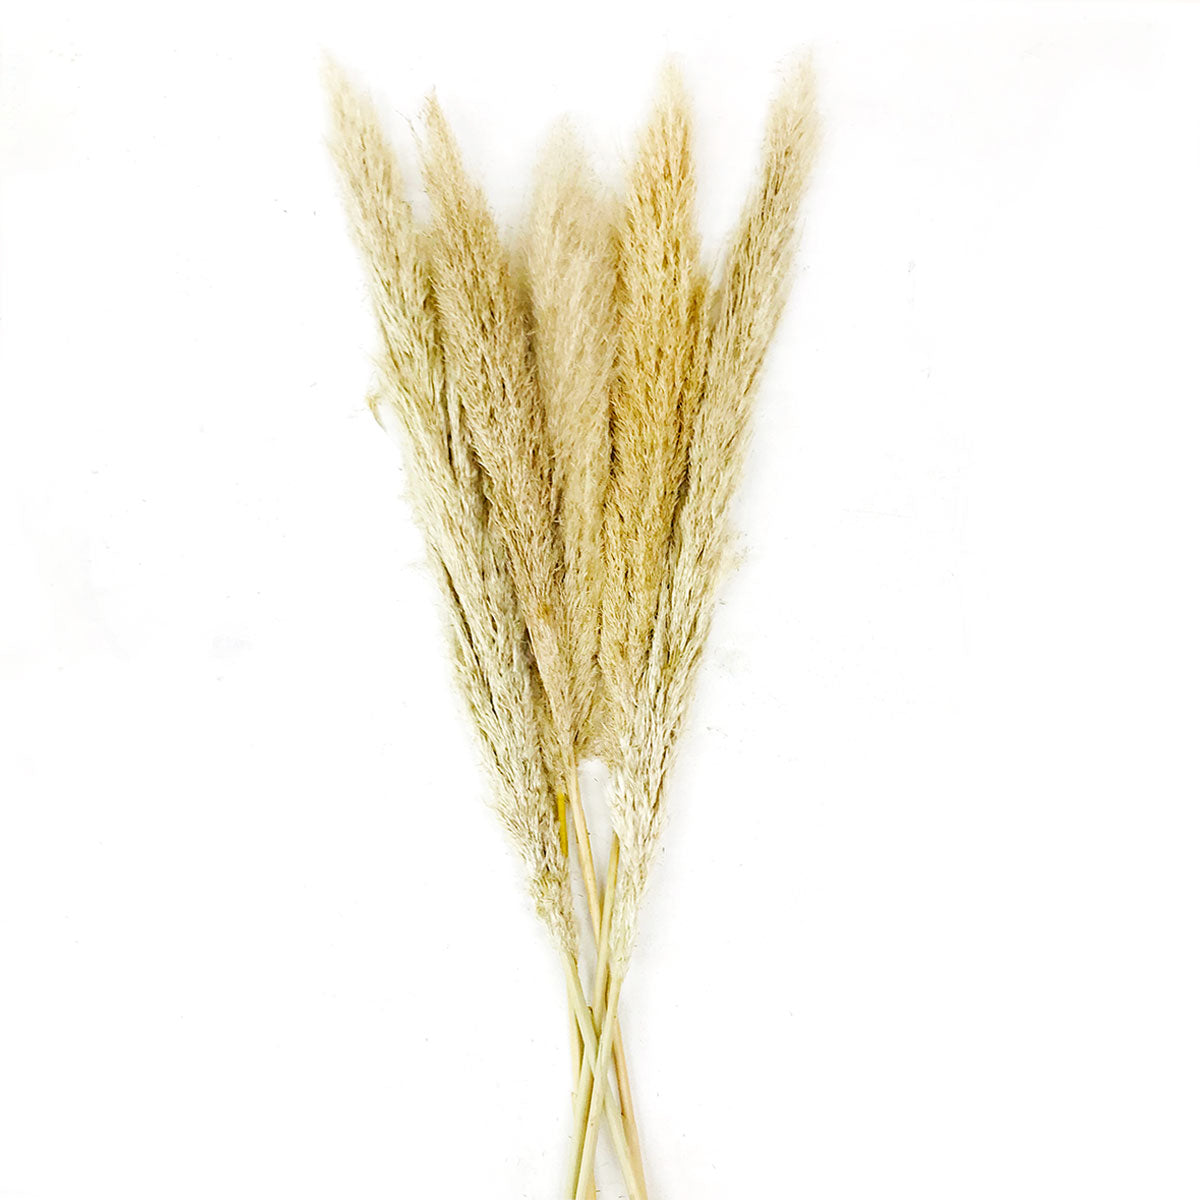 Buy Pampas Grass Online Same Day Flower Delivery Melbourne Amazing Graze Flowers